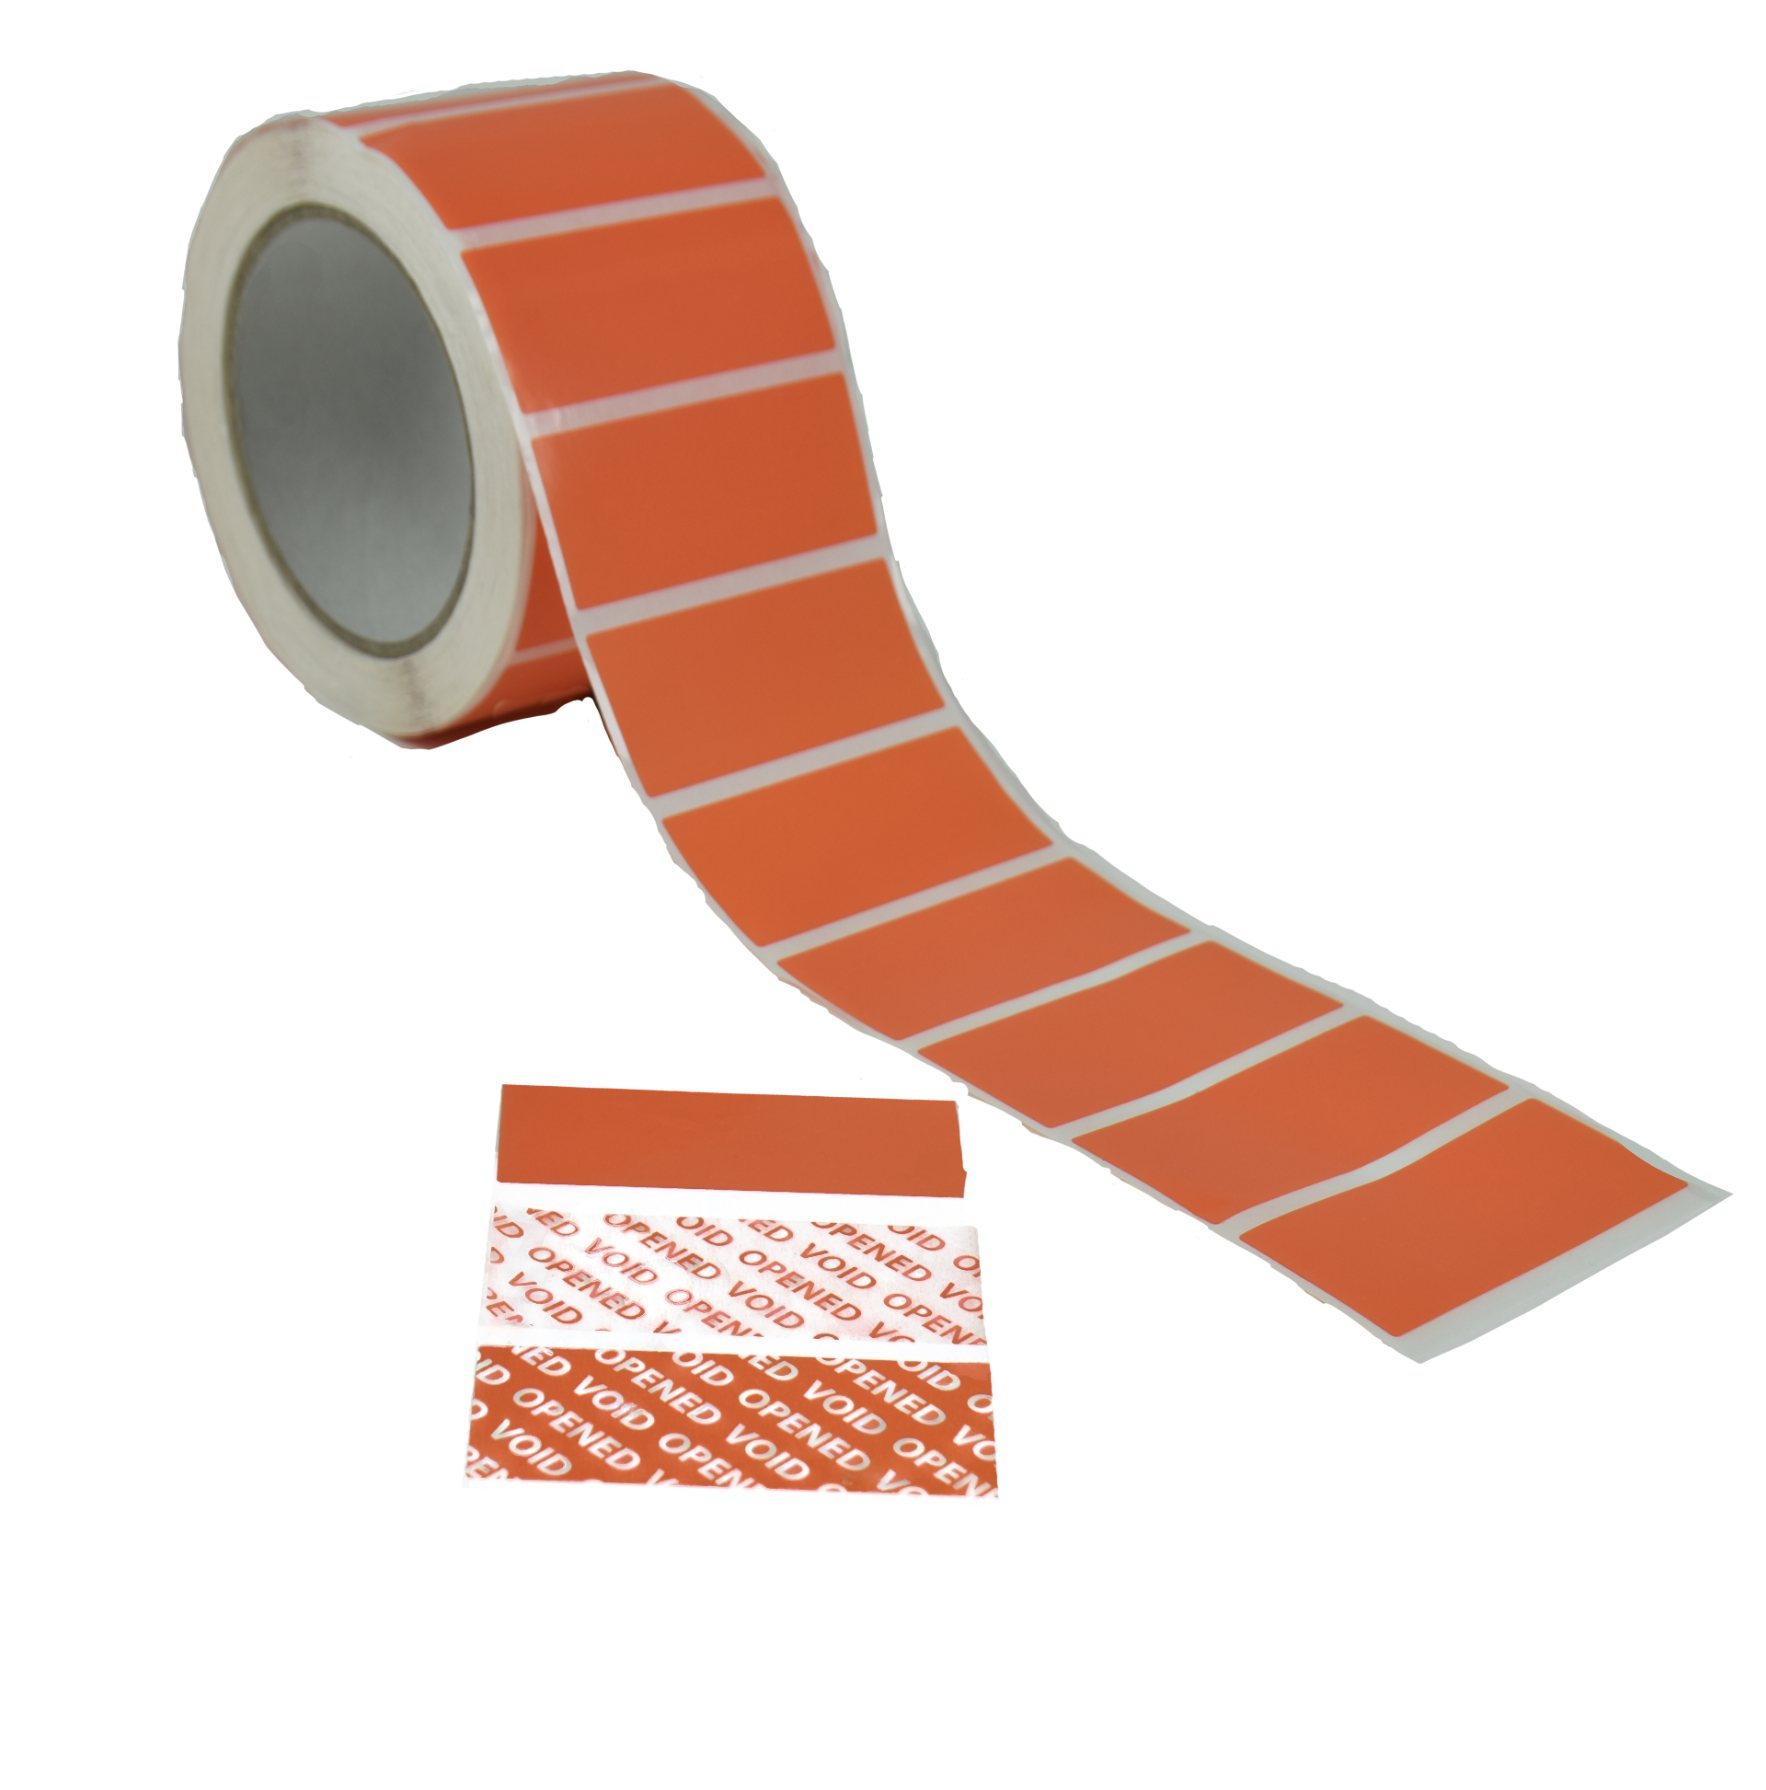 Orange P2350 Tamper Evident Security Label with reverse transfer void message